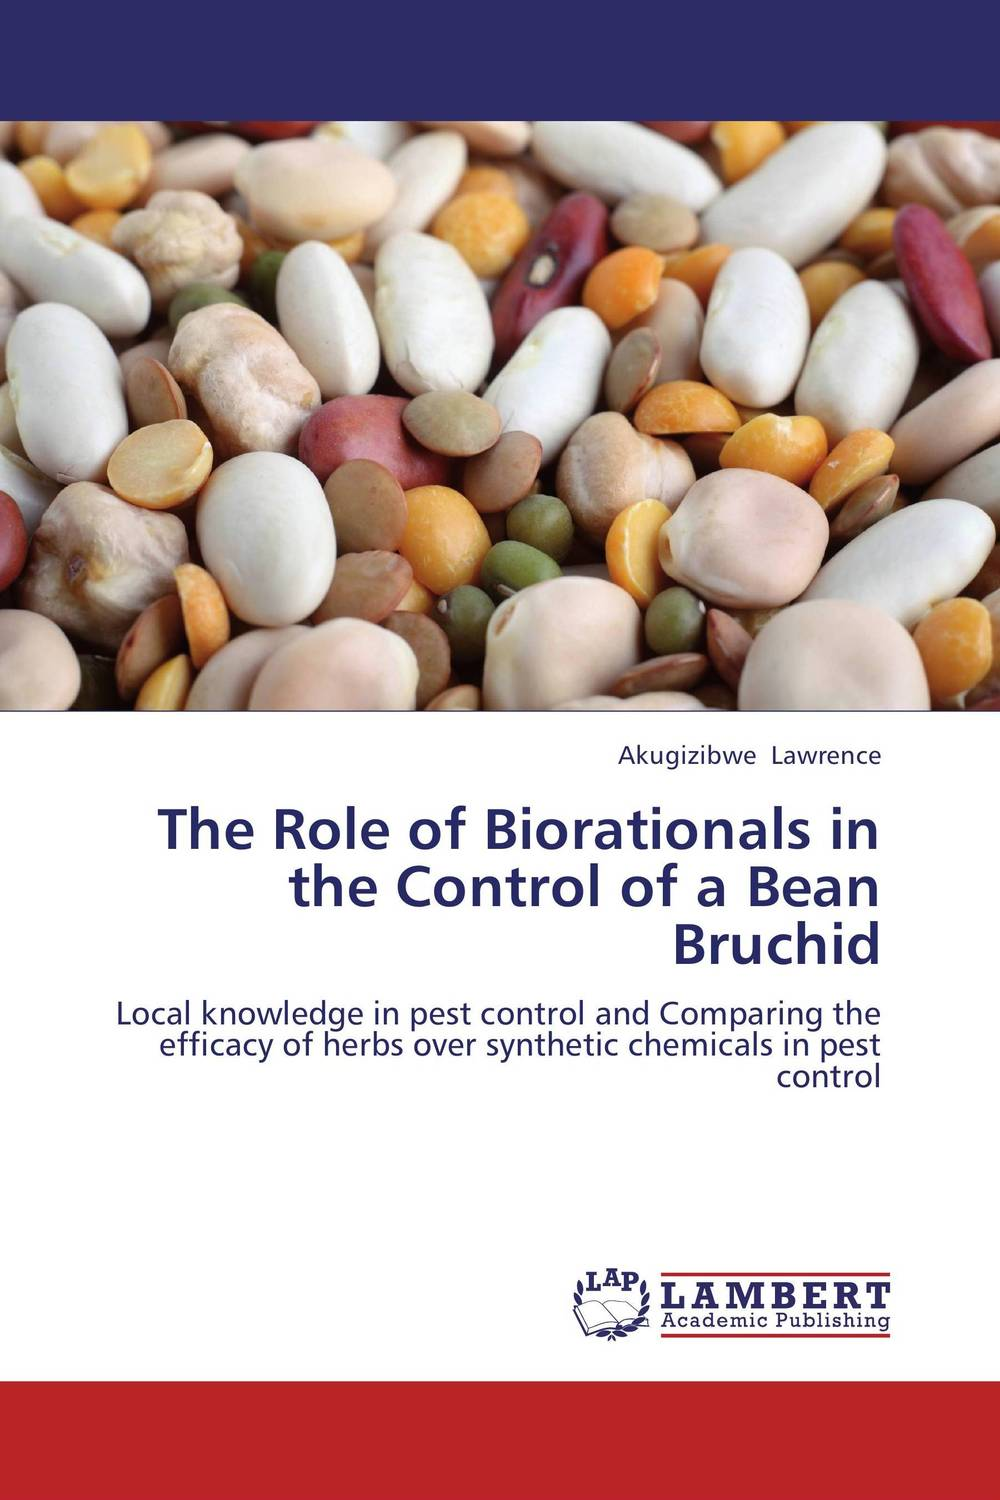 The Role of Biorationals in the Control of a Bean Bruchid the role of evaluation as a mechanism for advancing principal practice